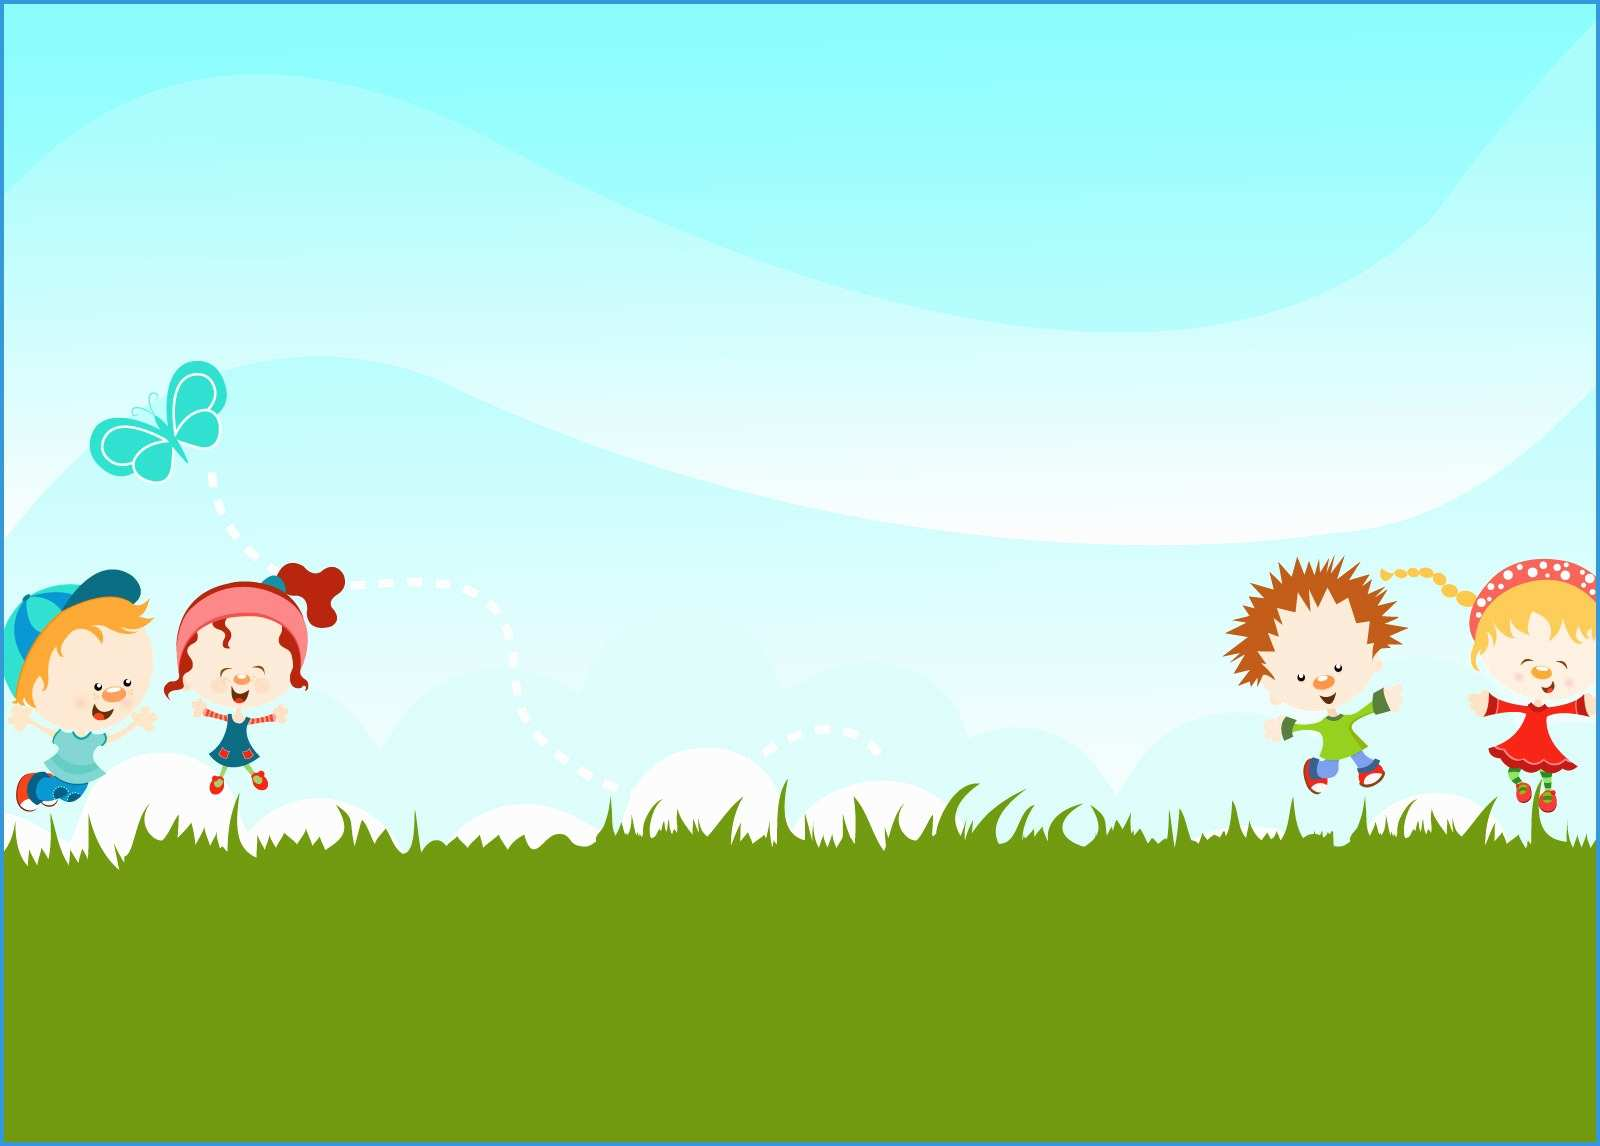 Free Child Care Powerpoint Templates Lovely Children Preschool Kids Background 337960 Hd Wallpaper Backgrounds Download